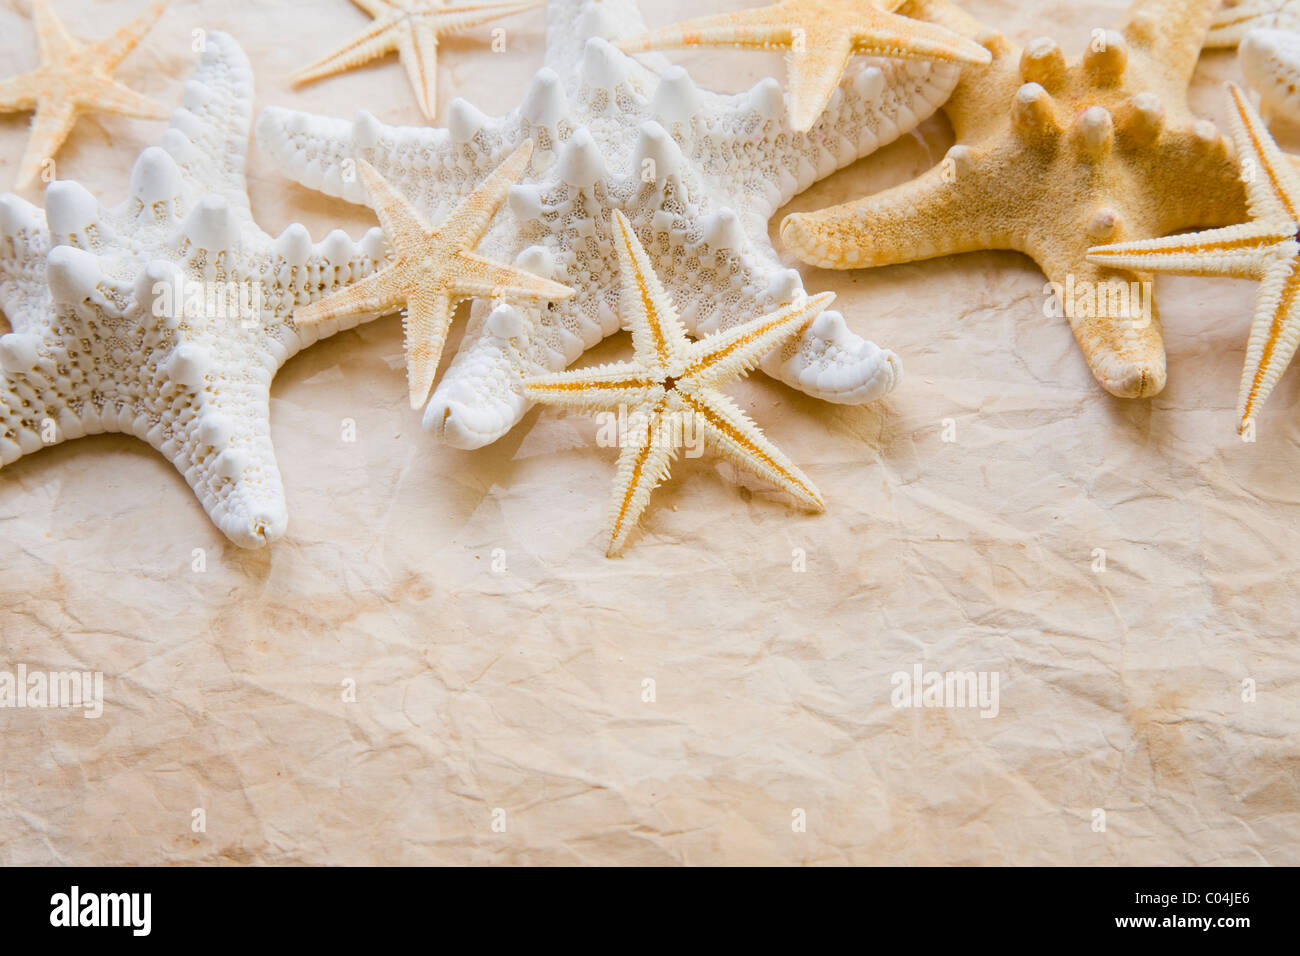 Background made up of starfish and old paper. - Stock Image